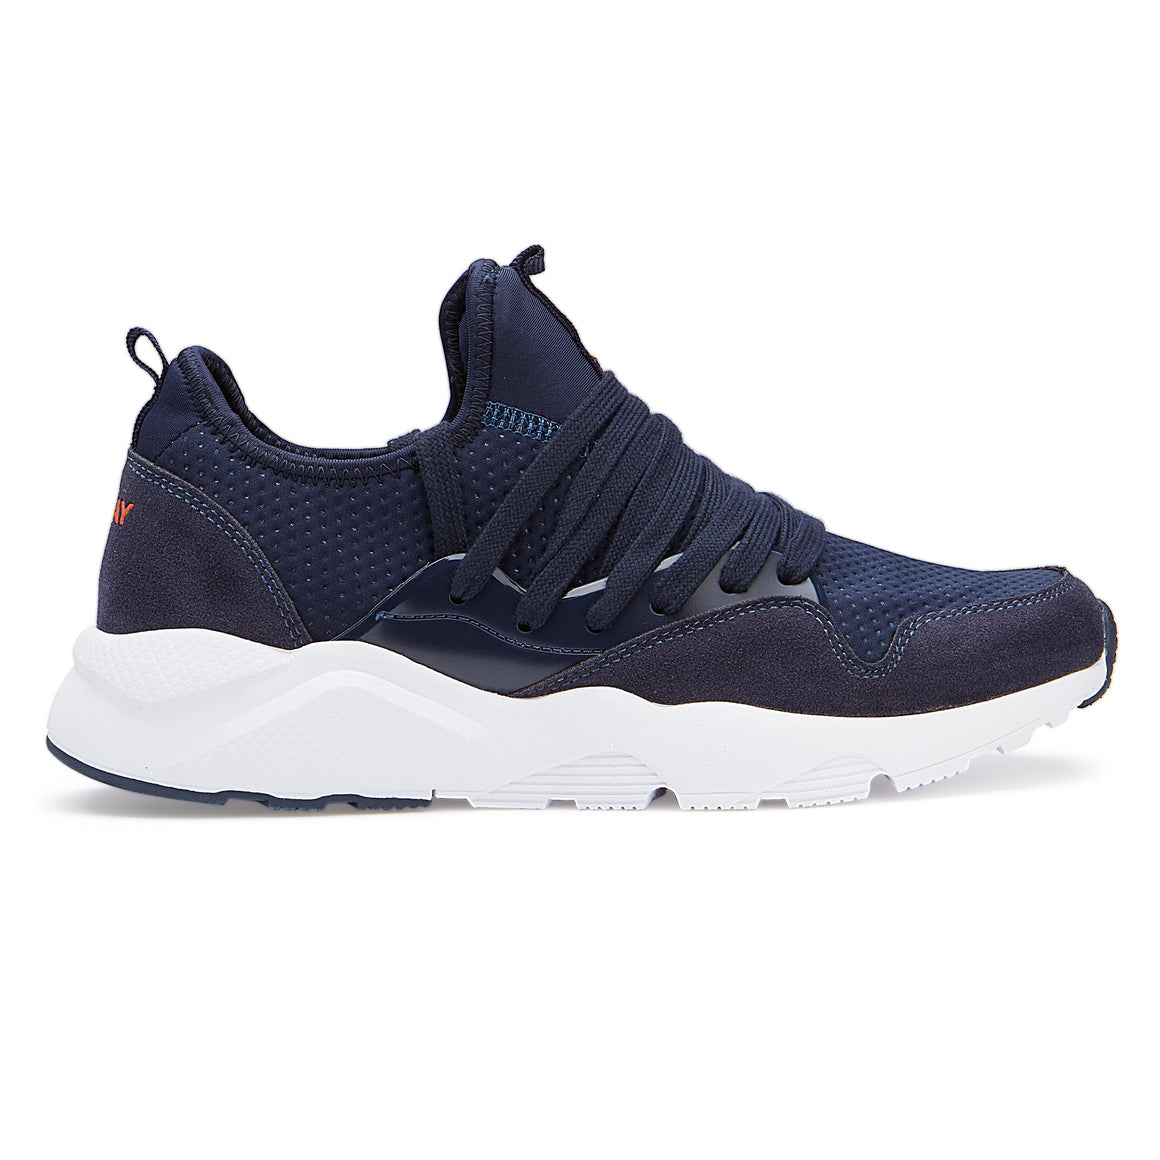 Xray Men's The Kamet Athletic Lowtop Sneakers NAVY